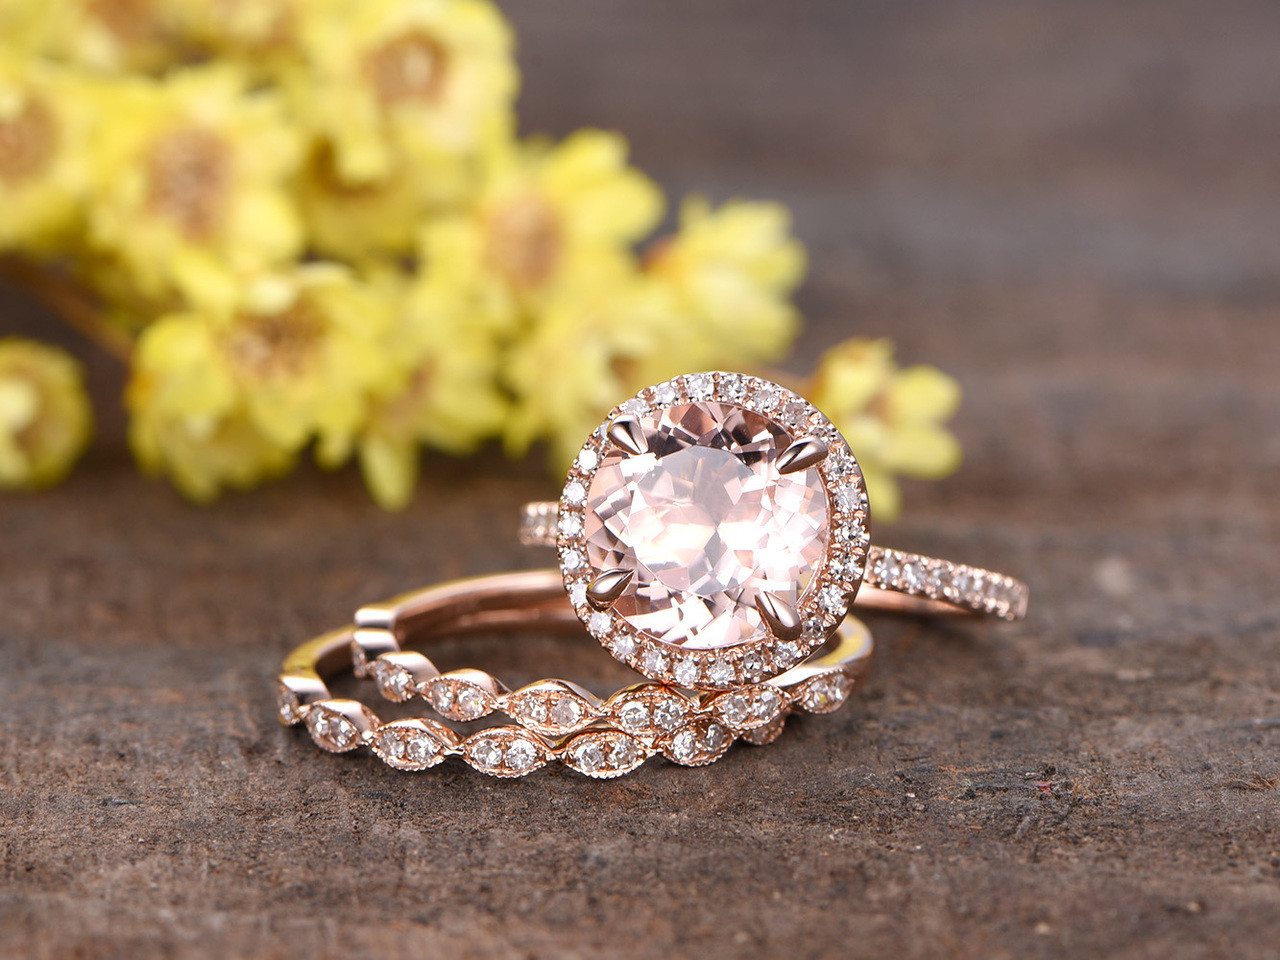 2.3 Carat Round Morganite Bridal Set 14k Rose Gold Diamond Engagement Ring  Halo Stacking Matching Band